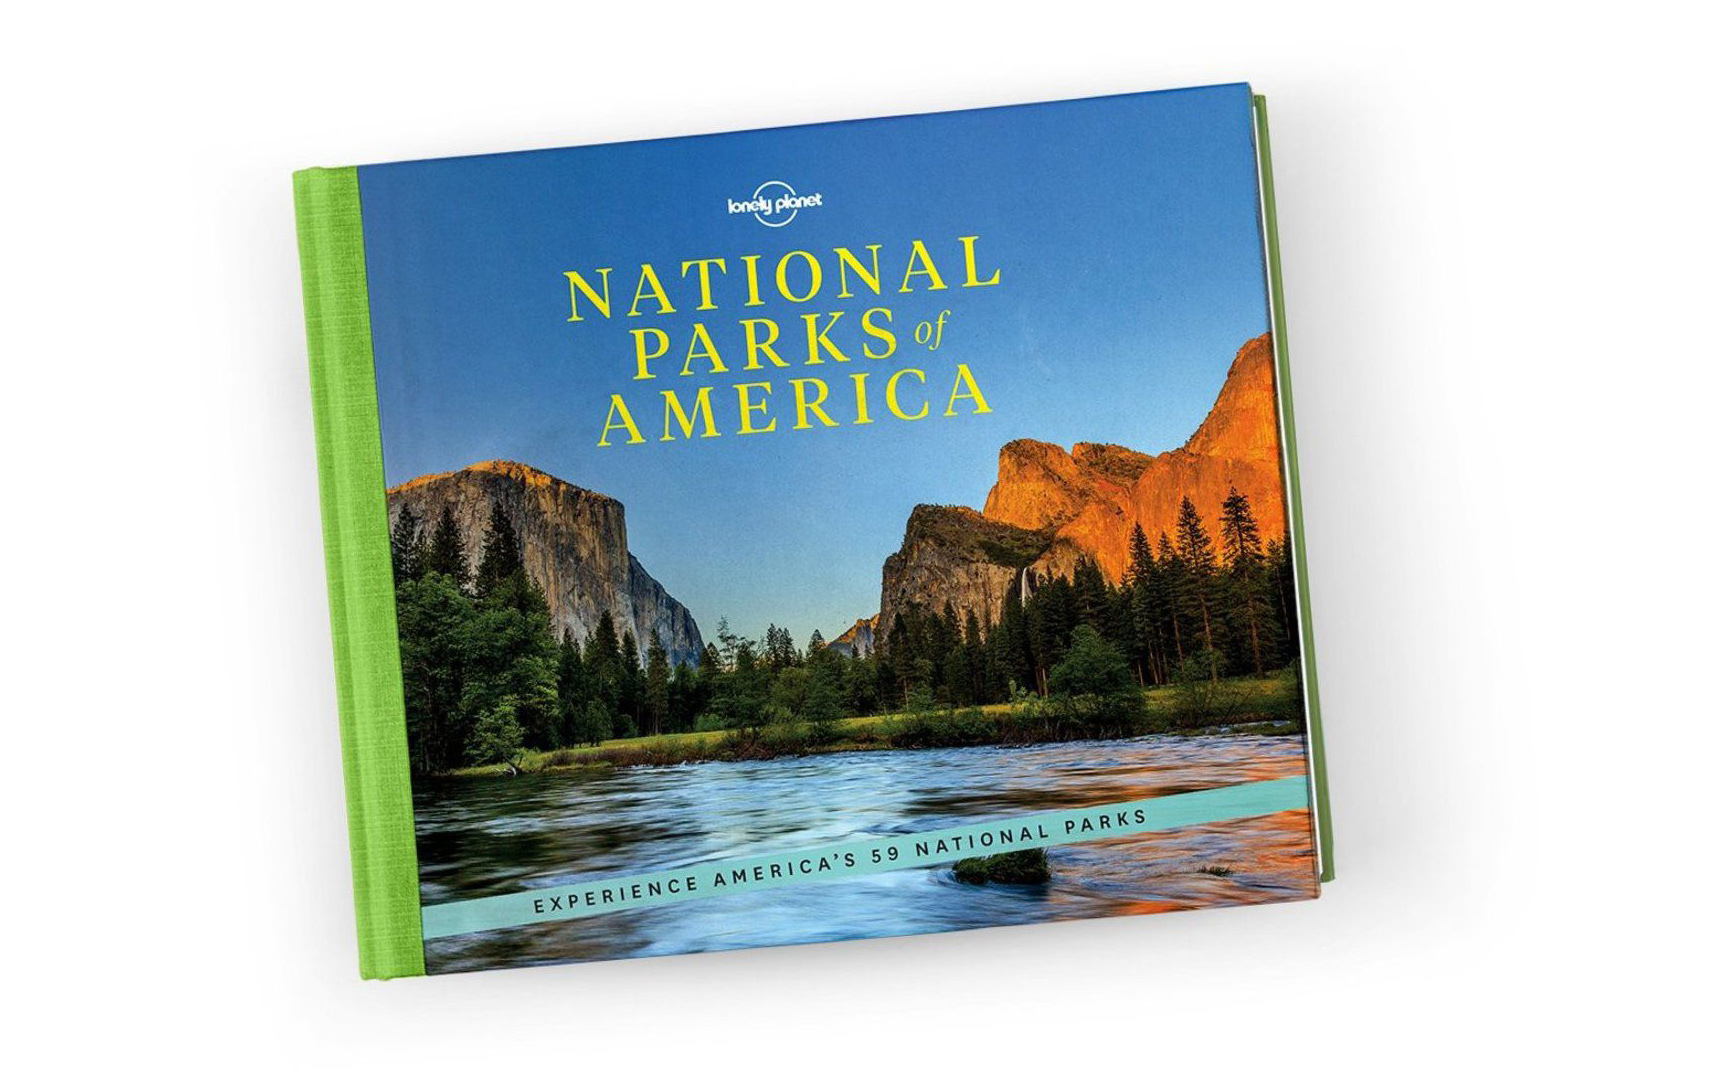 National-parks-america-Lonely-PLanet.jpg?mtime=20181108115929#asset:103682